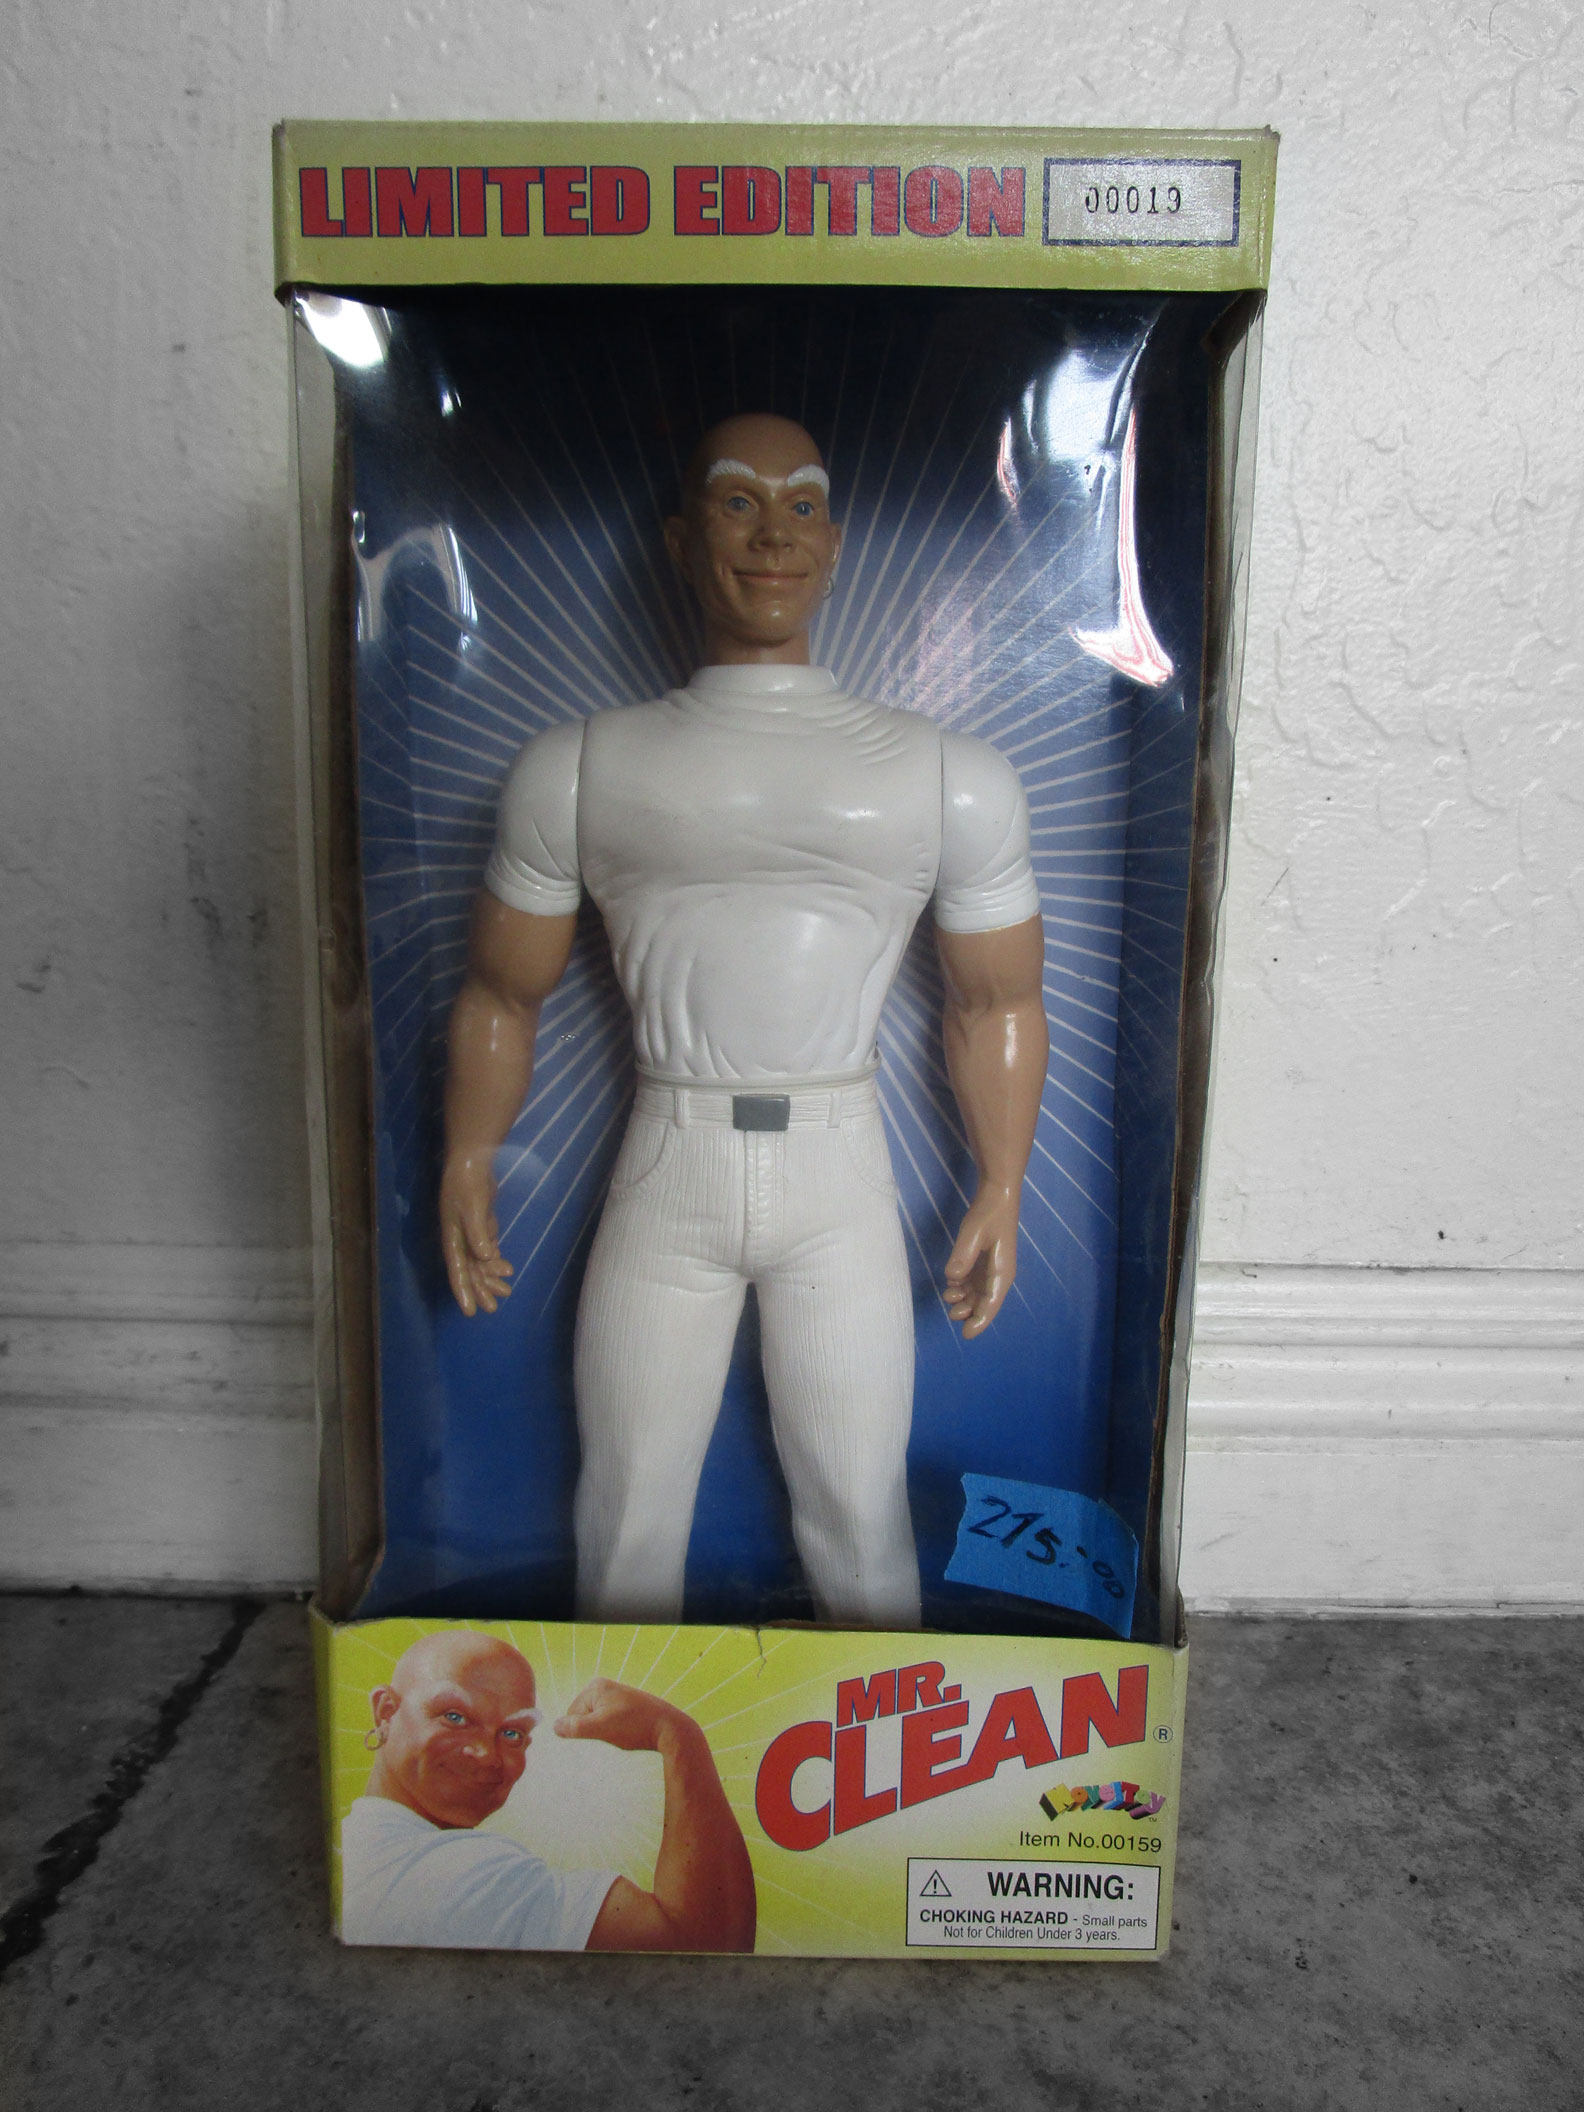 Mr. Clean Collectors Item - $180